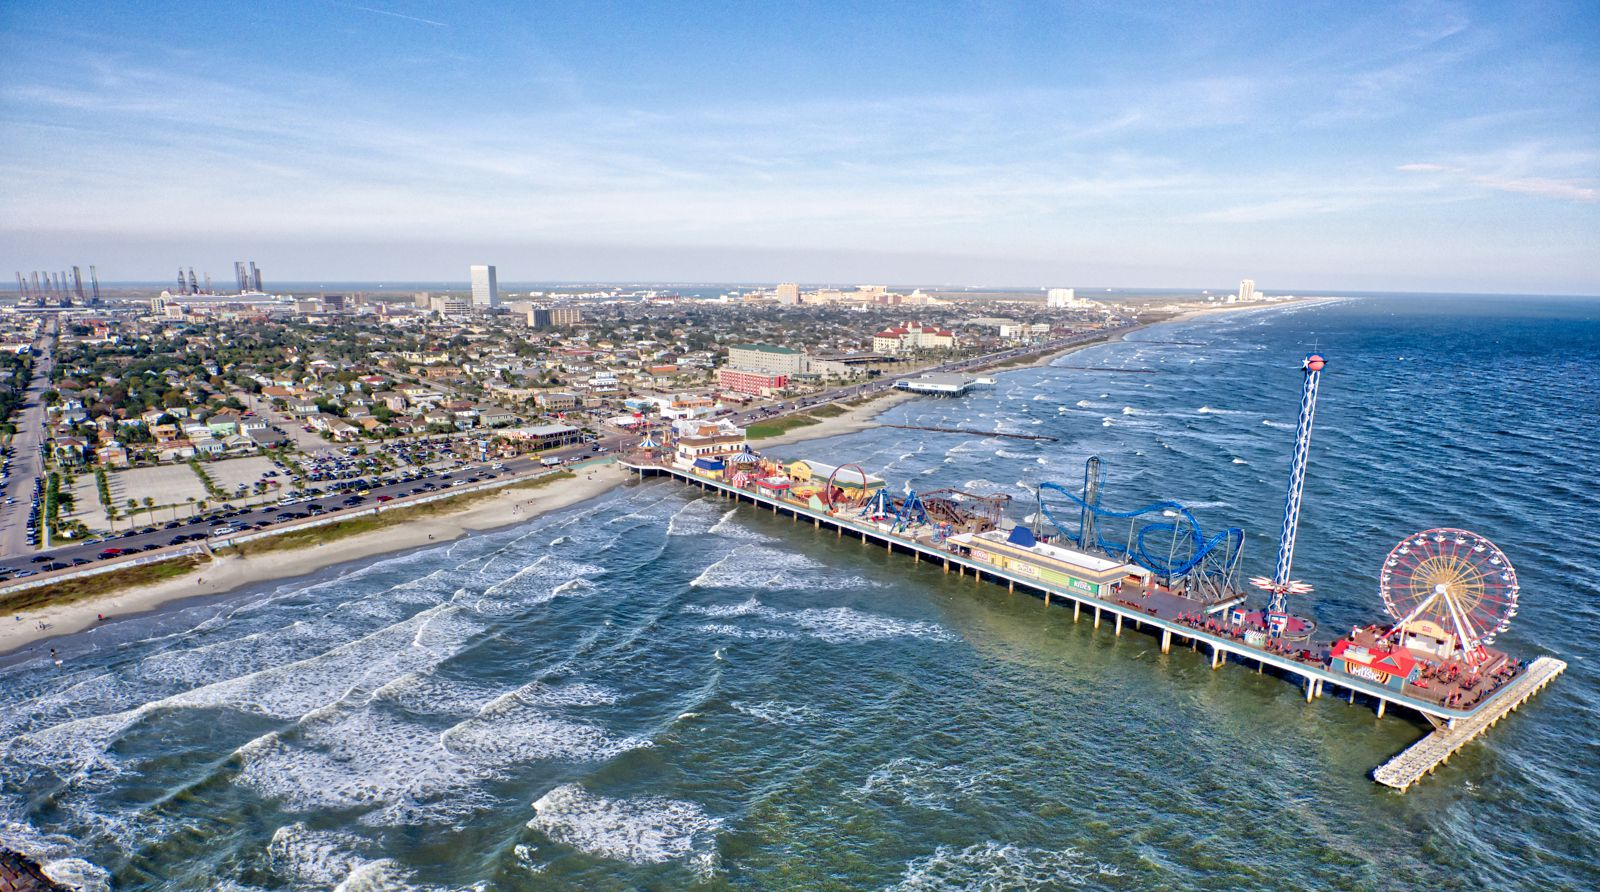 9 Romantic Things to Do in Galveston, Texas